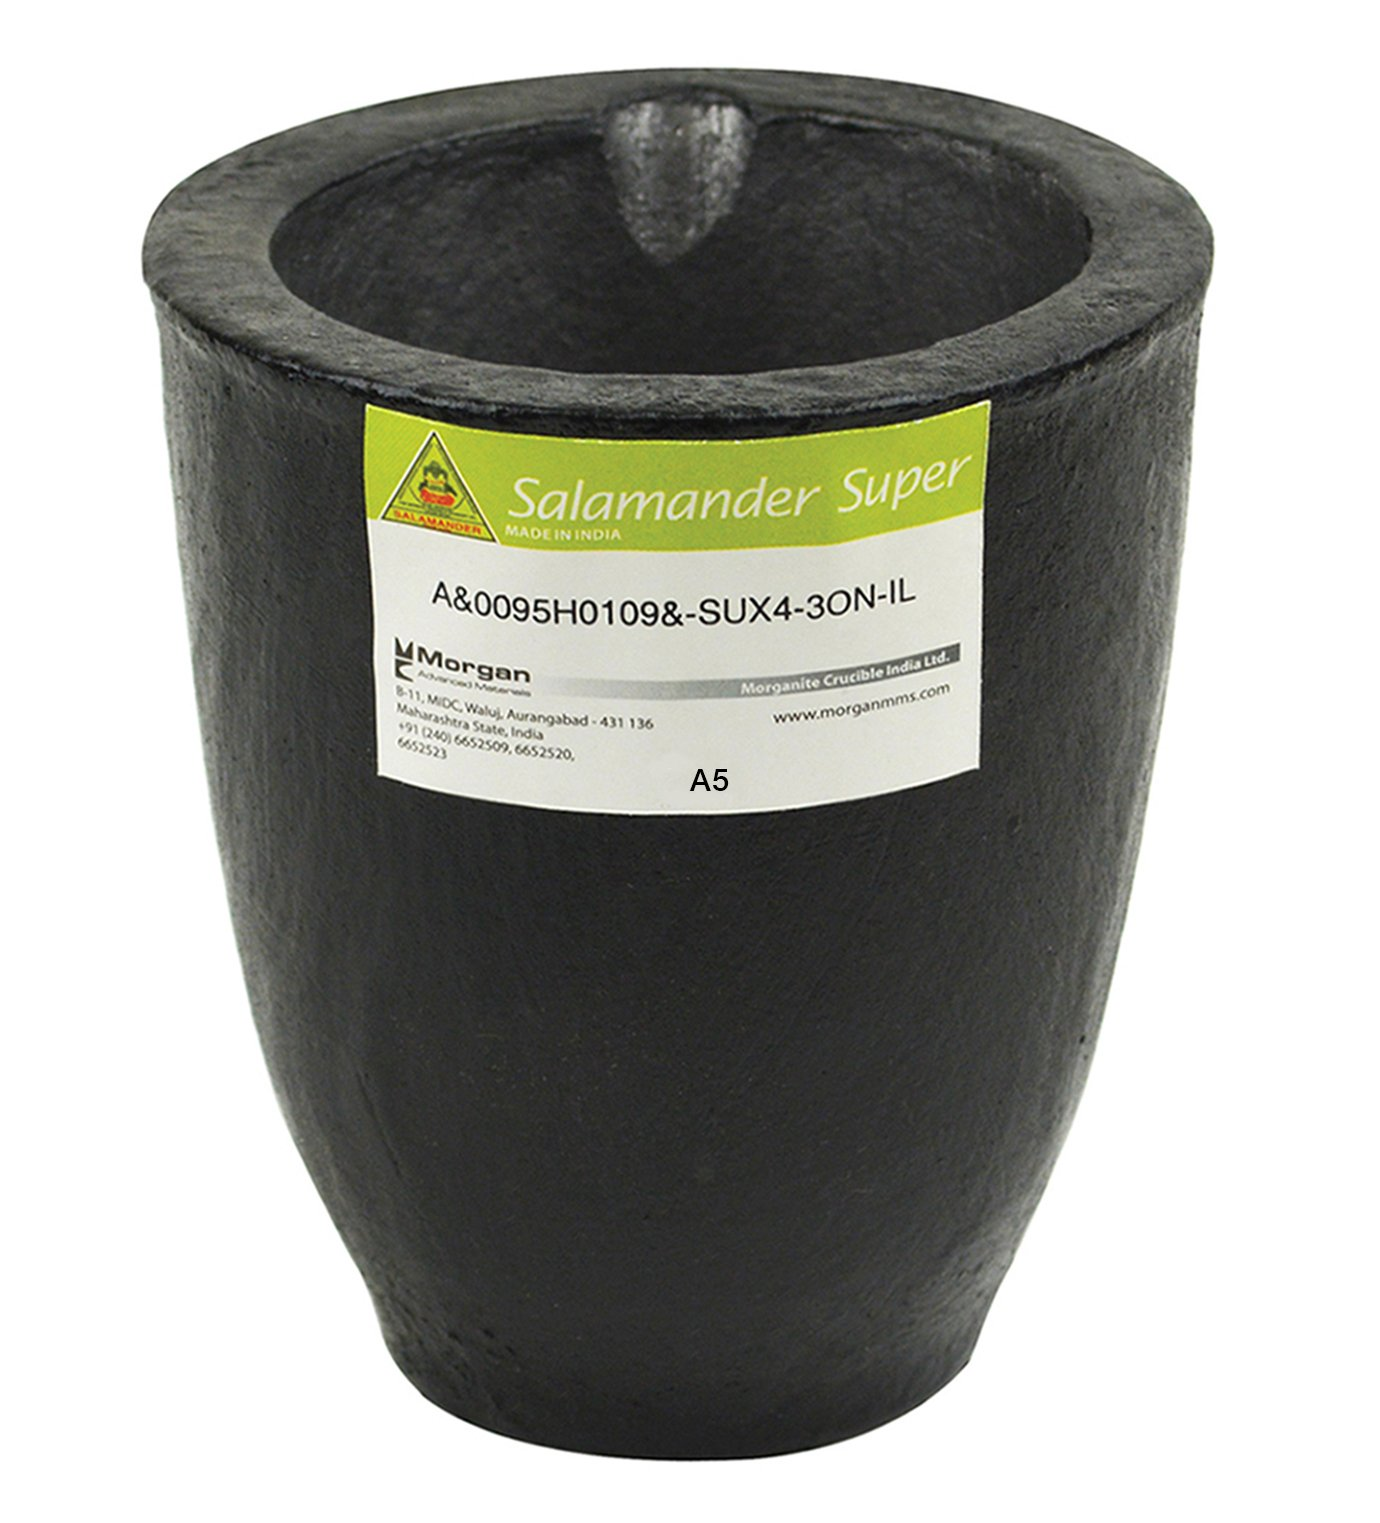 A5-6.8 Kg Salamander Super Clay Graphite Crucible for Precious Metal Melting Casting Gold Brass Silver Refining by PMC Supplies LLC